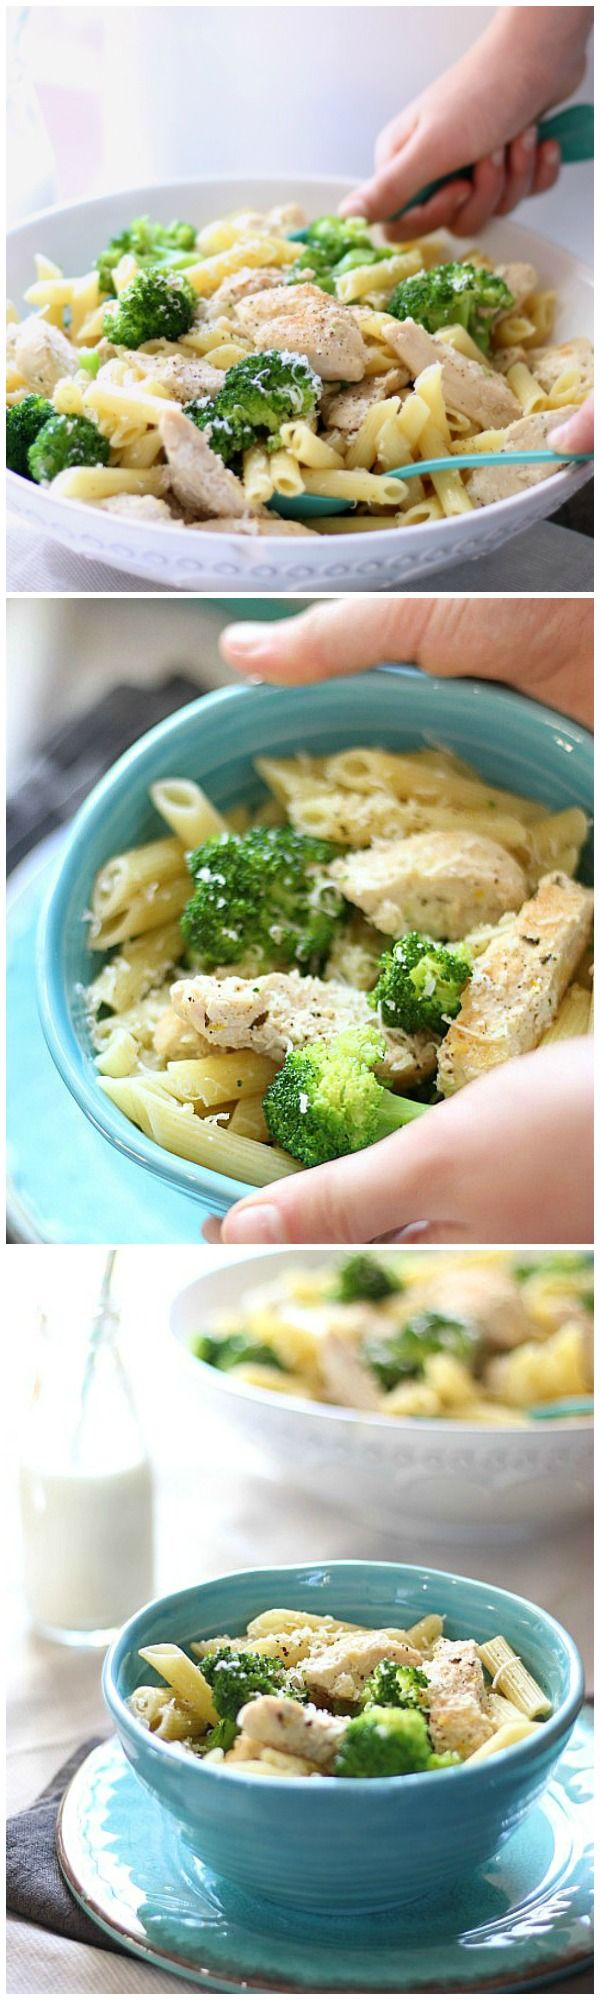 This classic Chicken Broccoli Pasta is the perfect recipe for a week night meal. In less than 30 minutes, you can cook and serve this nourishing meal, making this an excellent choice for those busy nights on the go! ribaswithlove.com